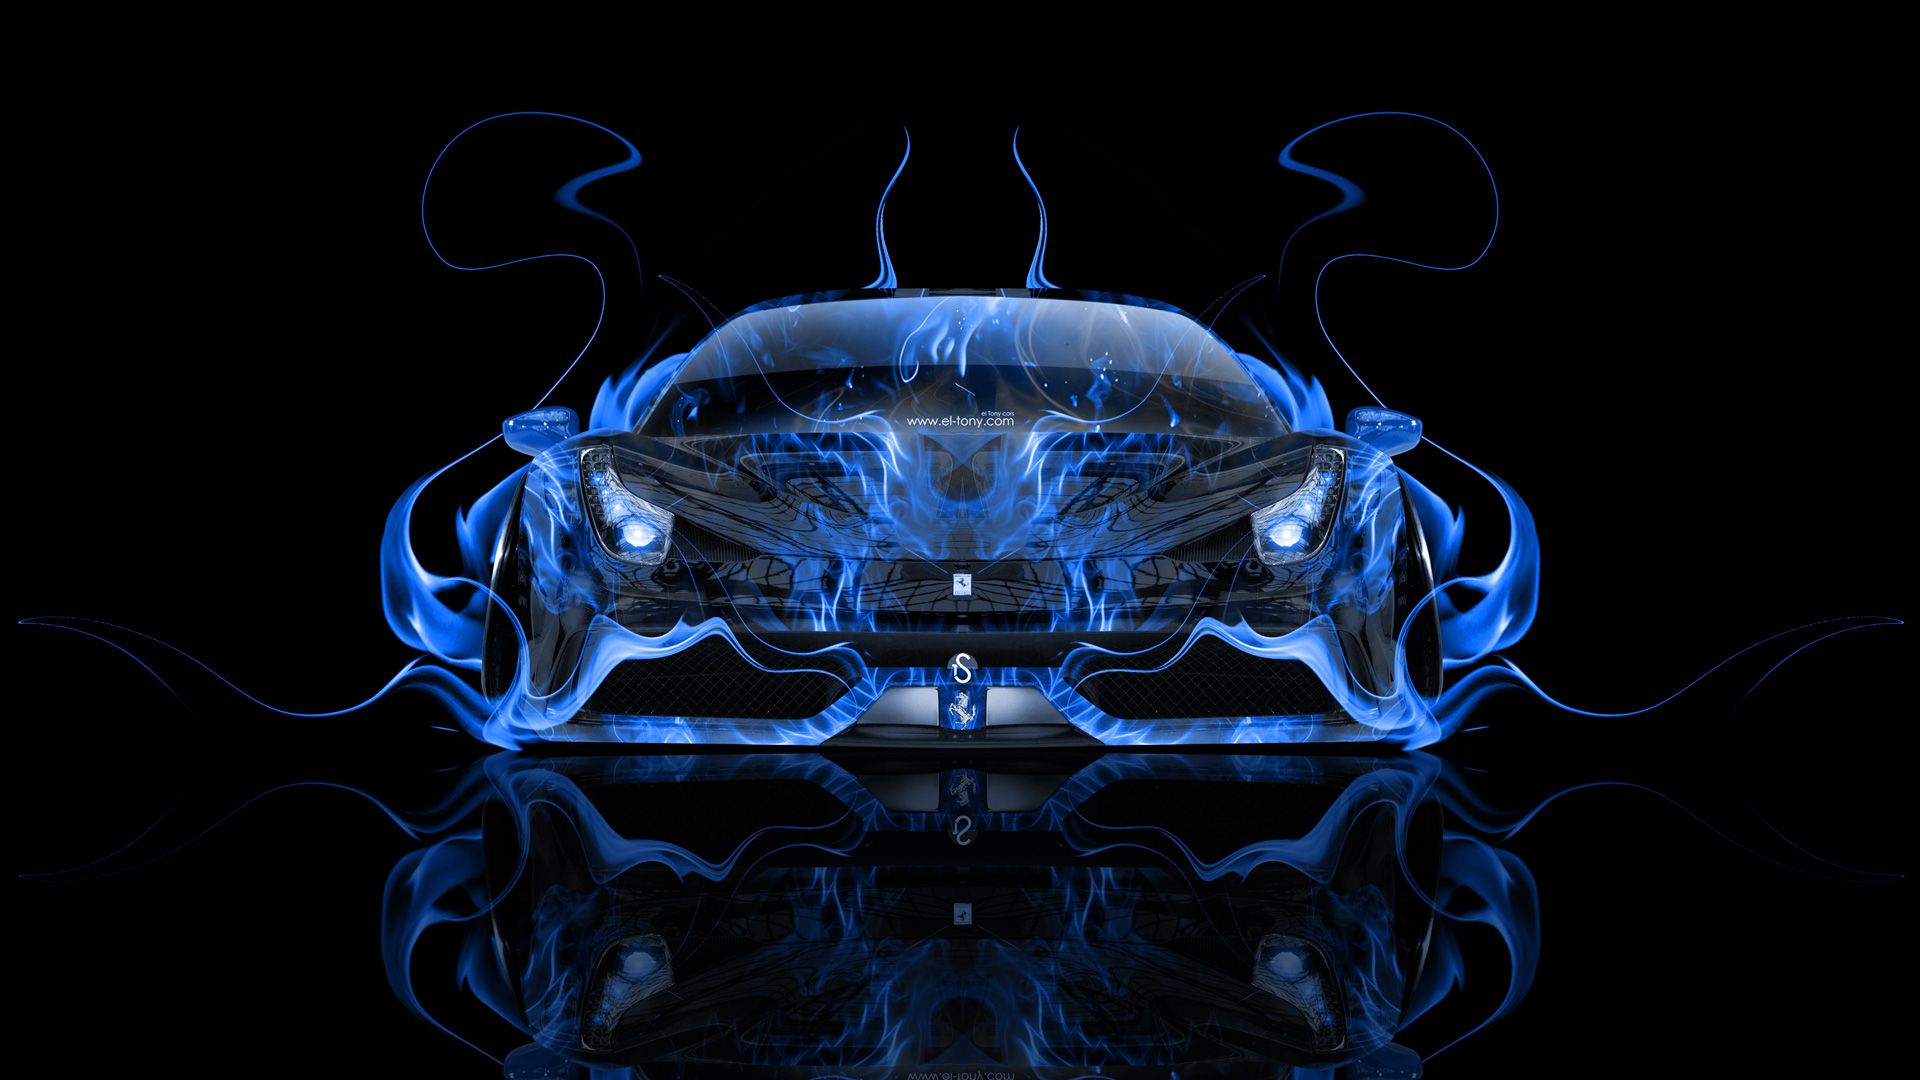 Ferrari 458 Italia Front Fire Abstract Car 2014 El Tony